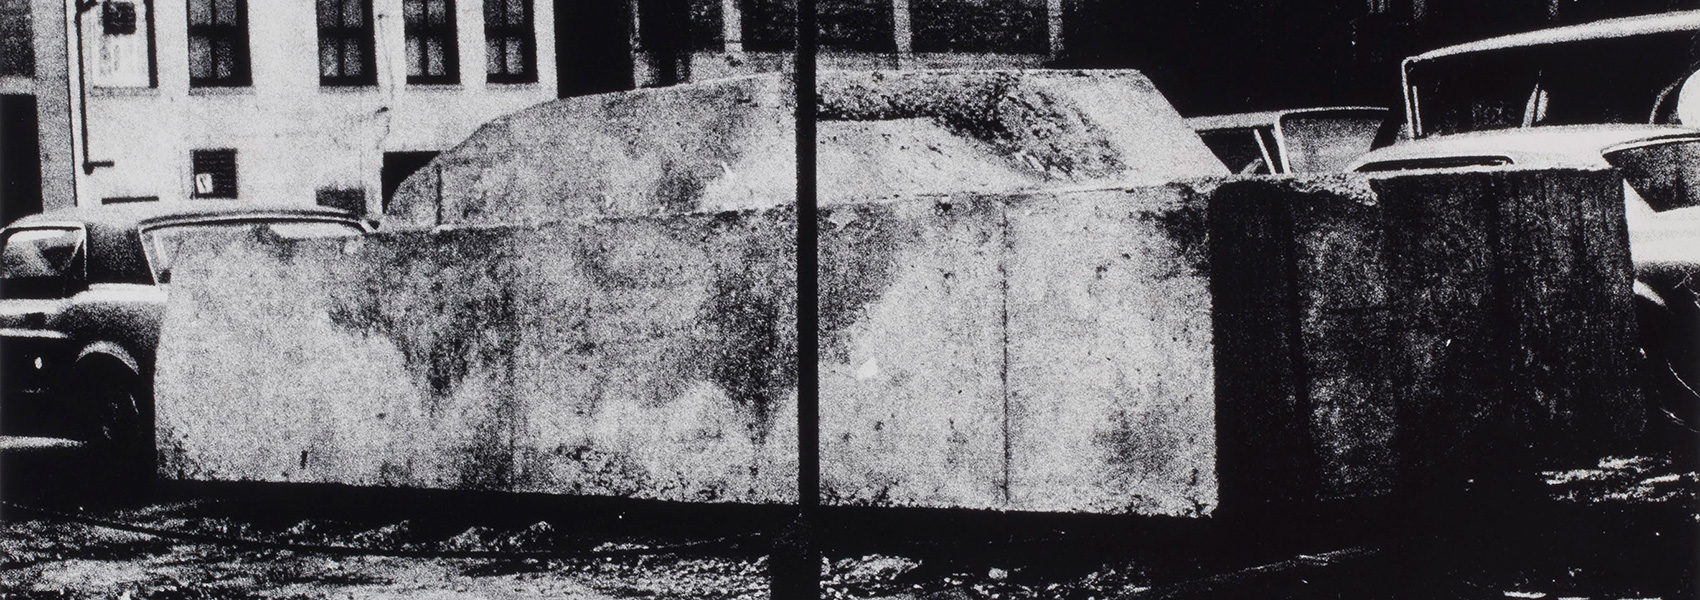 Wolf Vostell, Concrete Traffic, Chicago, 1970